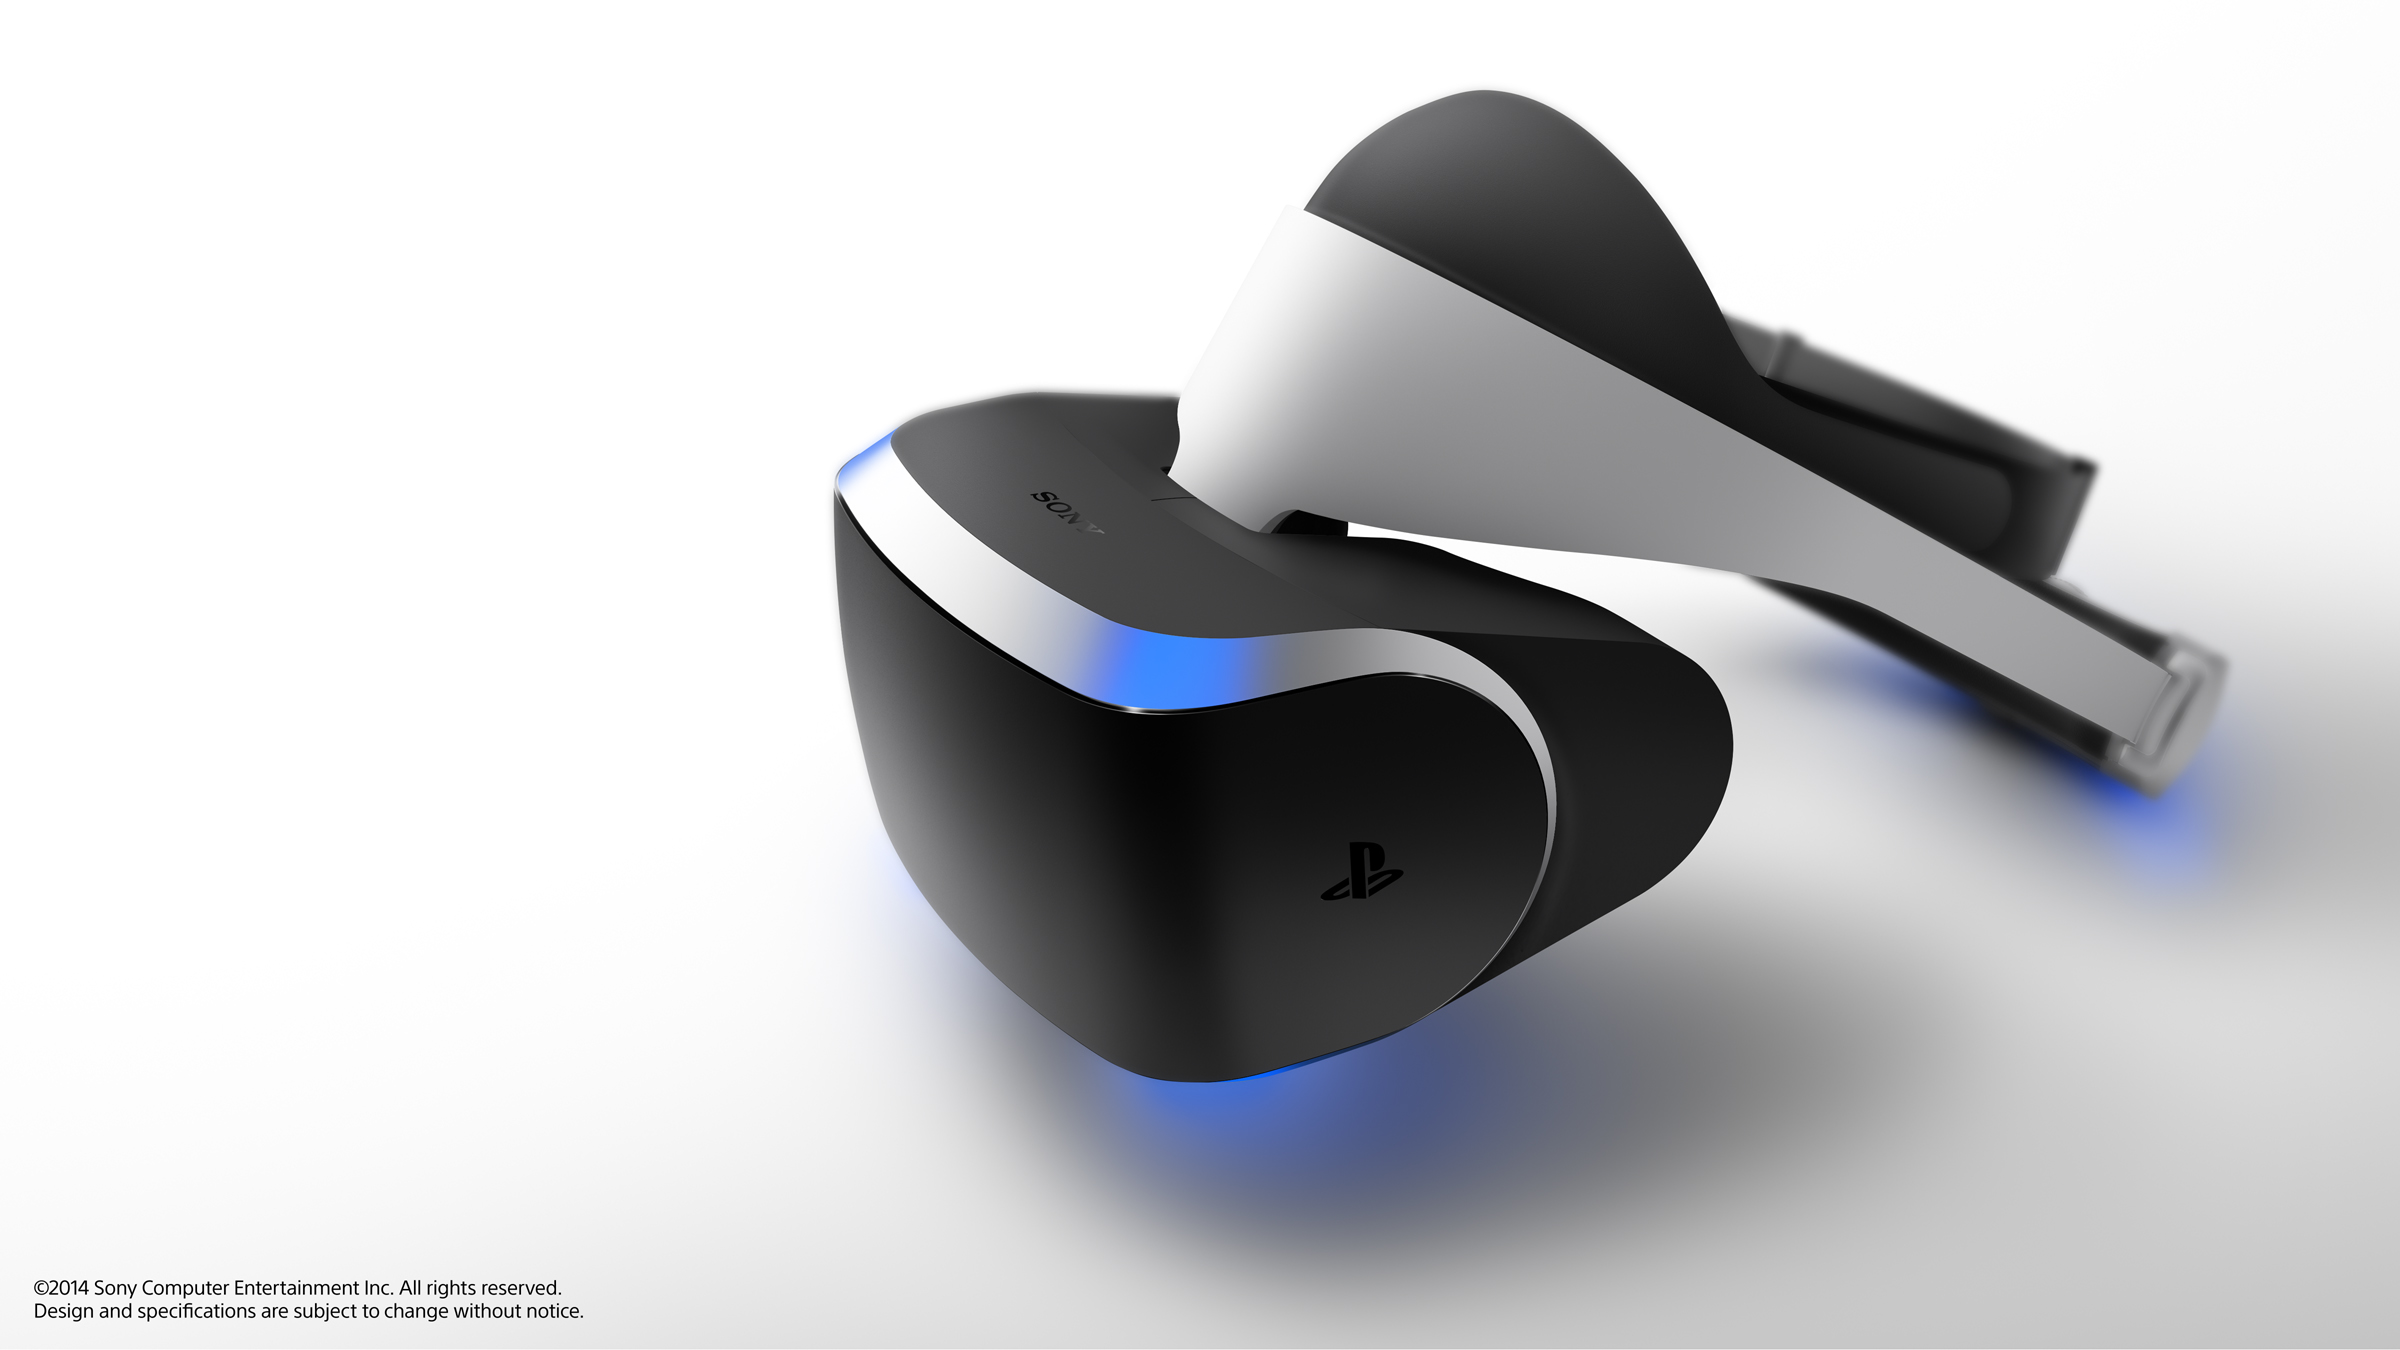 Project Morpheus, SCE's prototype virtual reality (VR) system